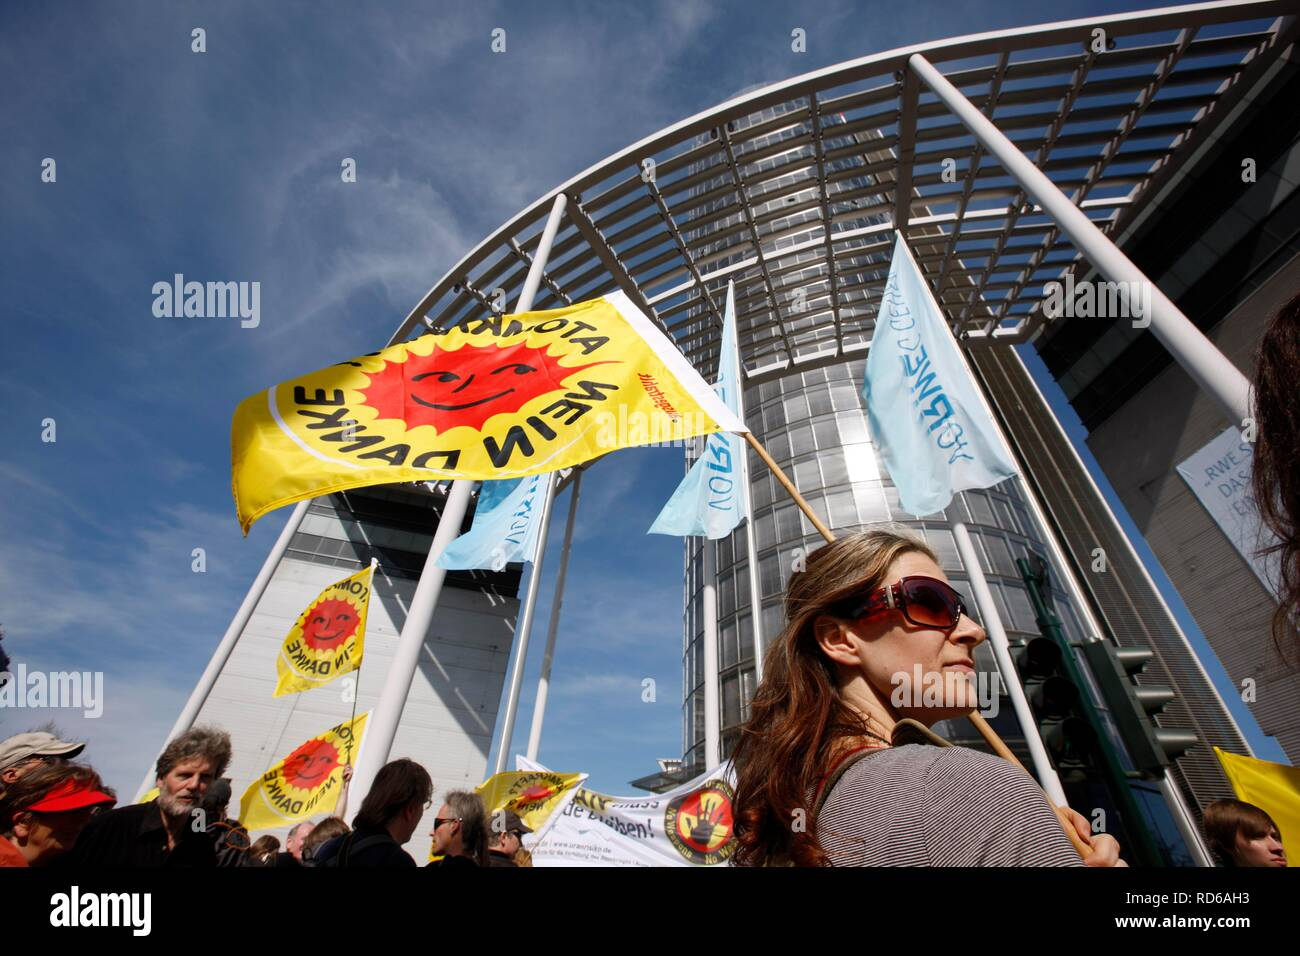 Anti-nuclear demonstration outside the headquarters of the RWE energy company in Essen, North Rhine-Westphalia Stock Photo